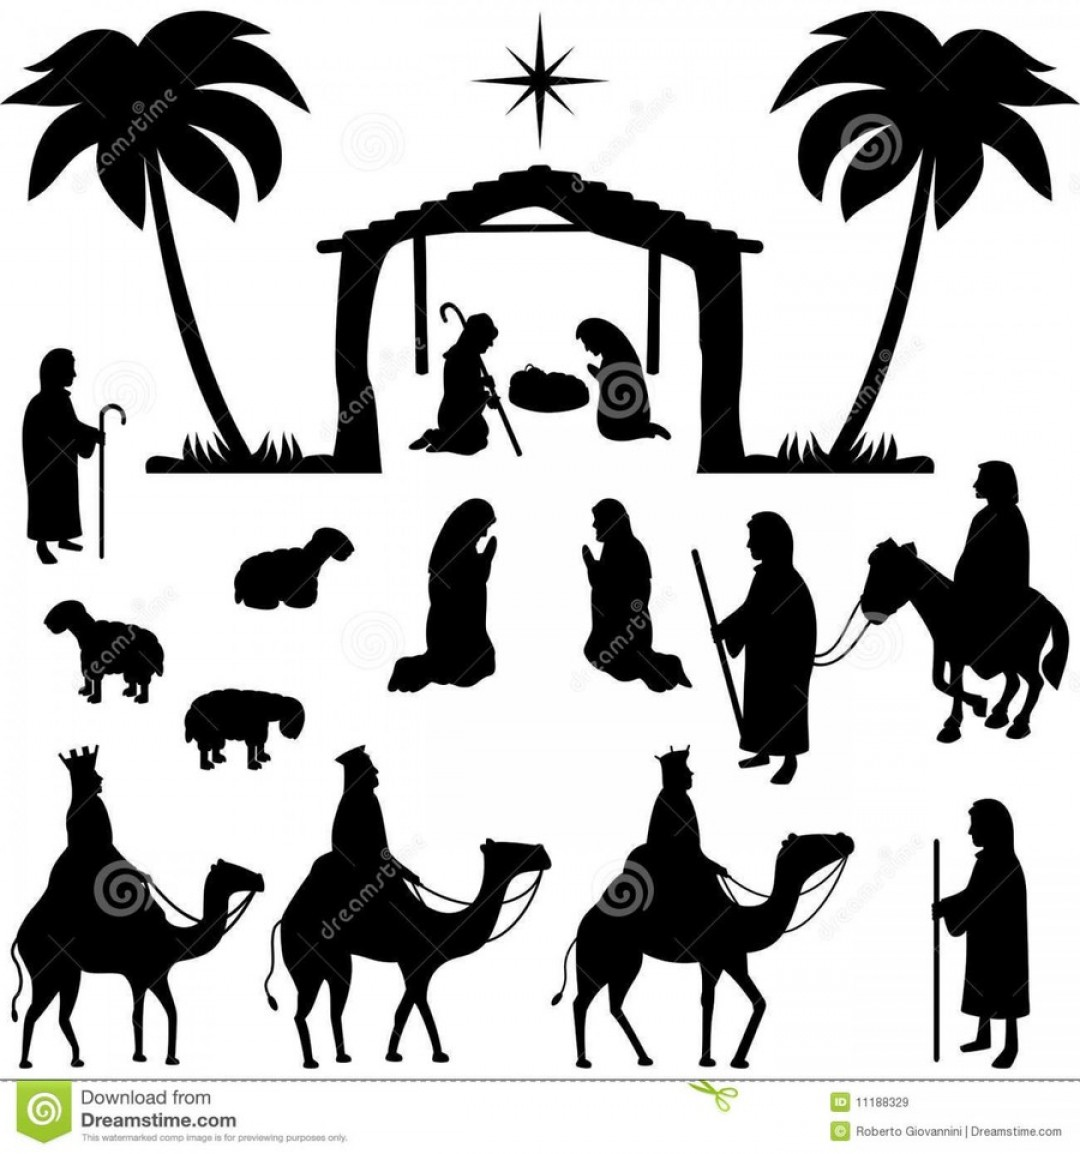 Free Nativity Scene Images Clip Art.